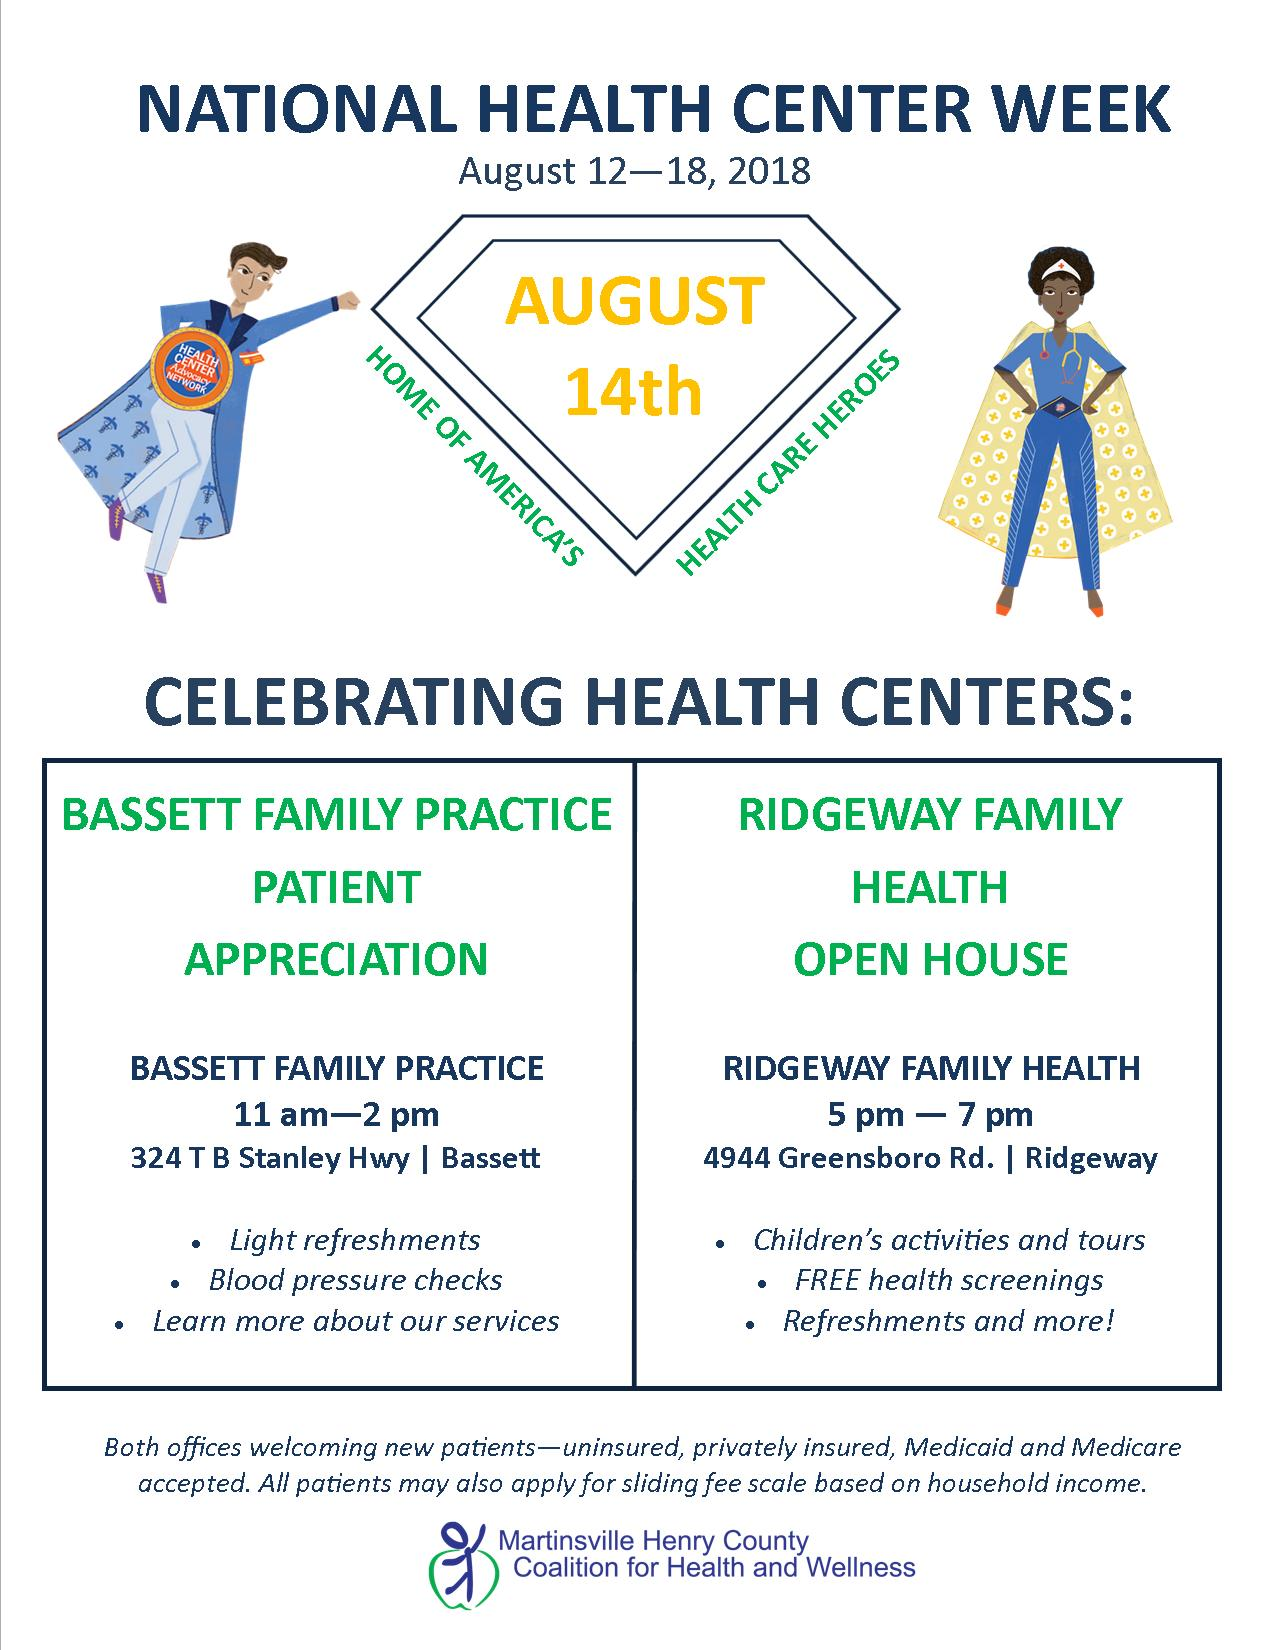 National Health Center Week August 12 - 18 | Martinsville Henry ...